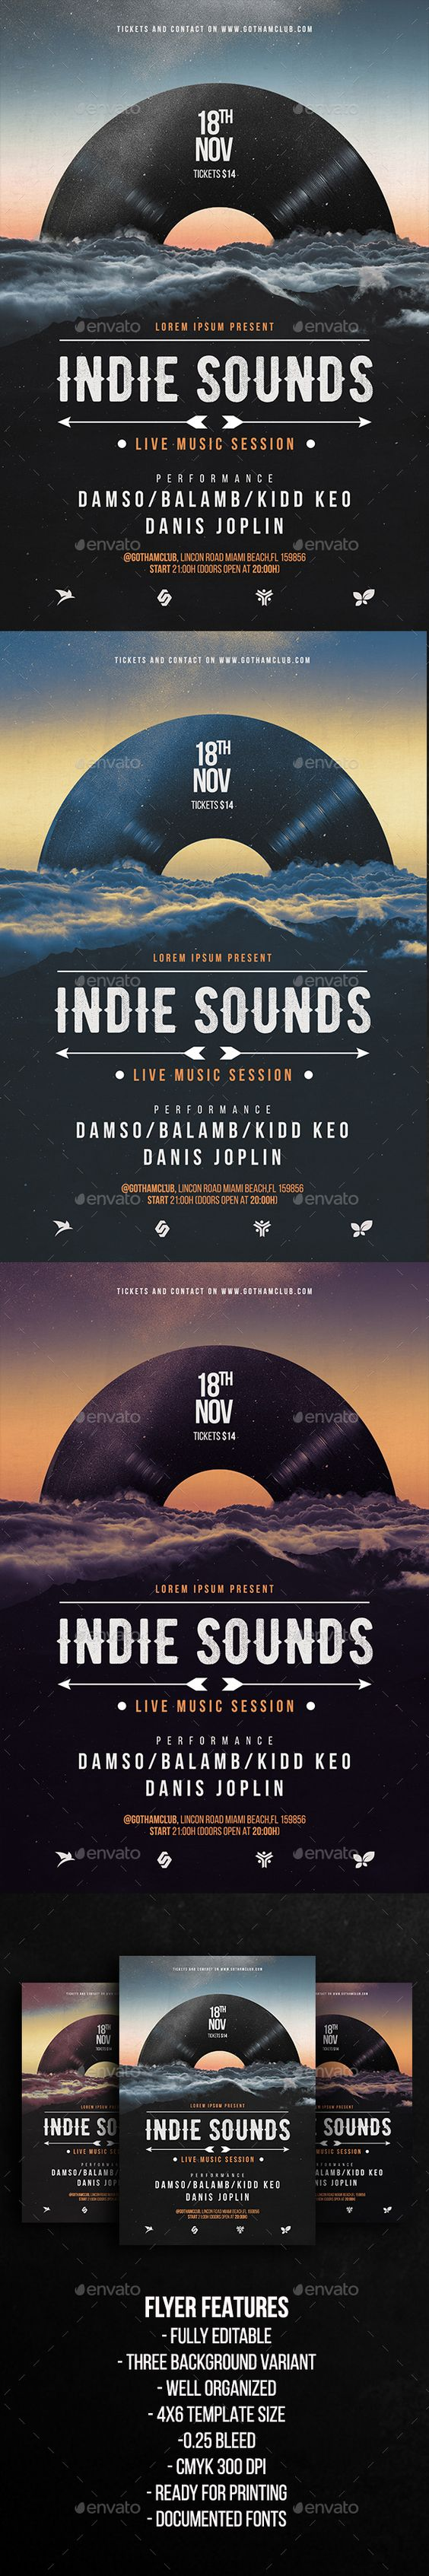 Indie Sounds Flyer Template   Indie, Hipster and Flyers